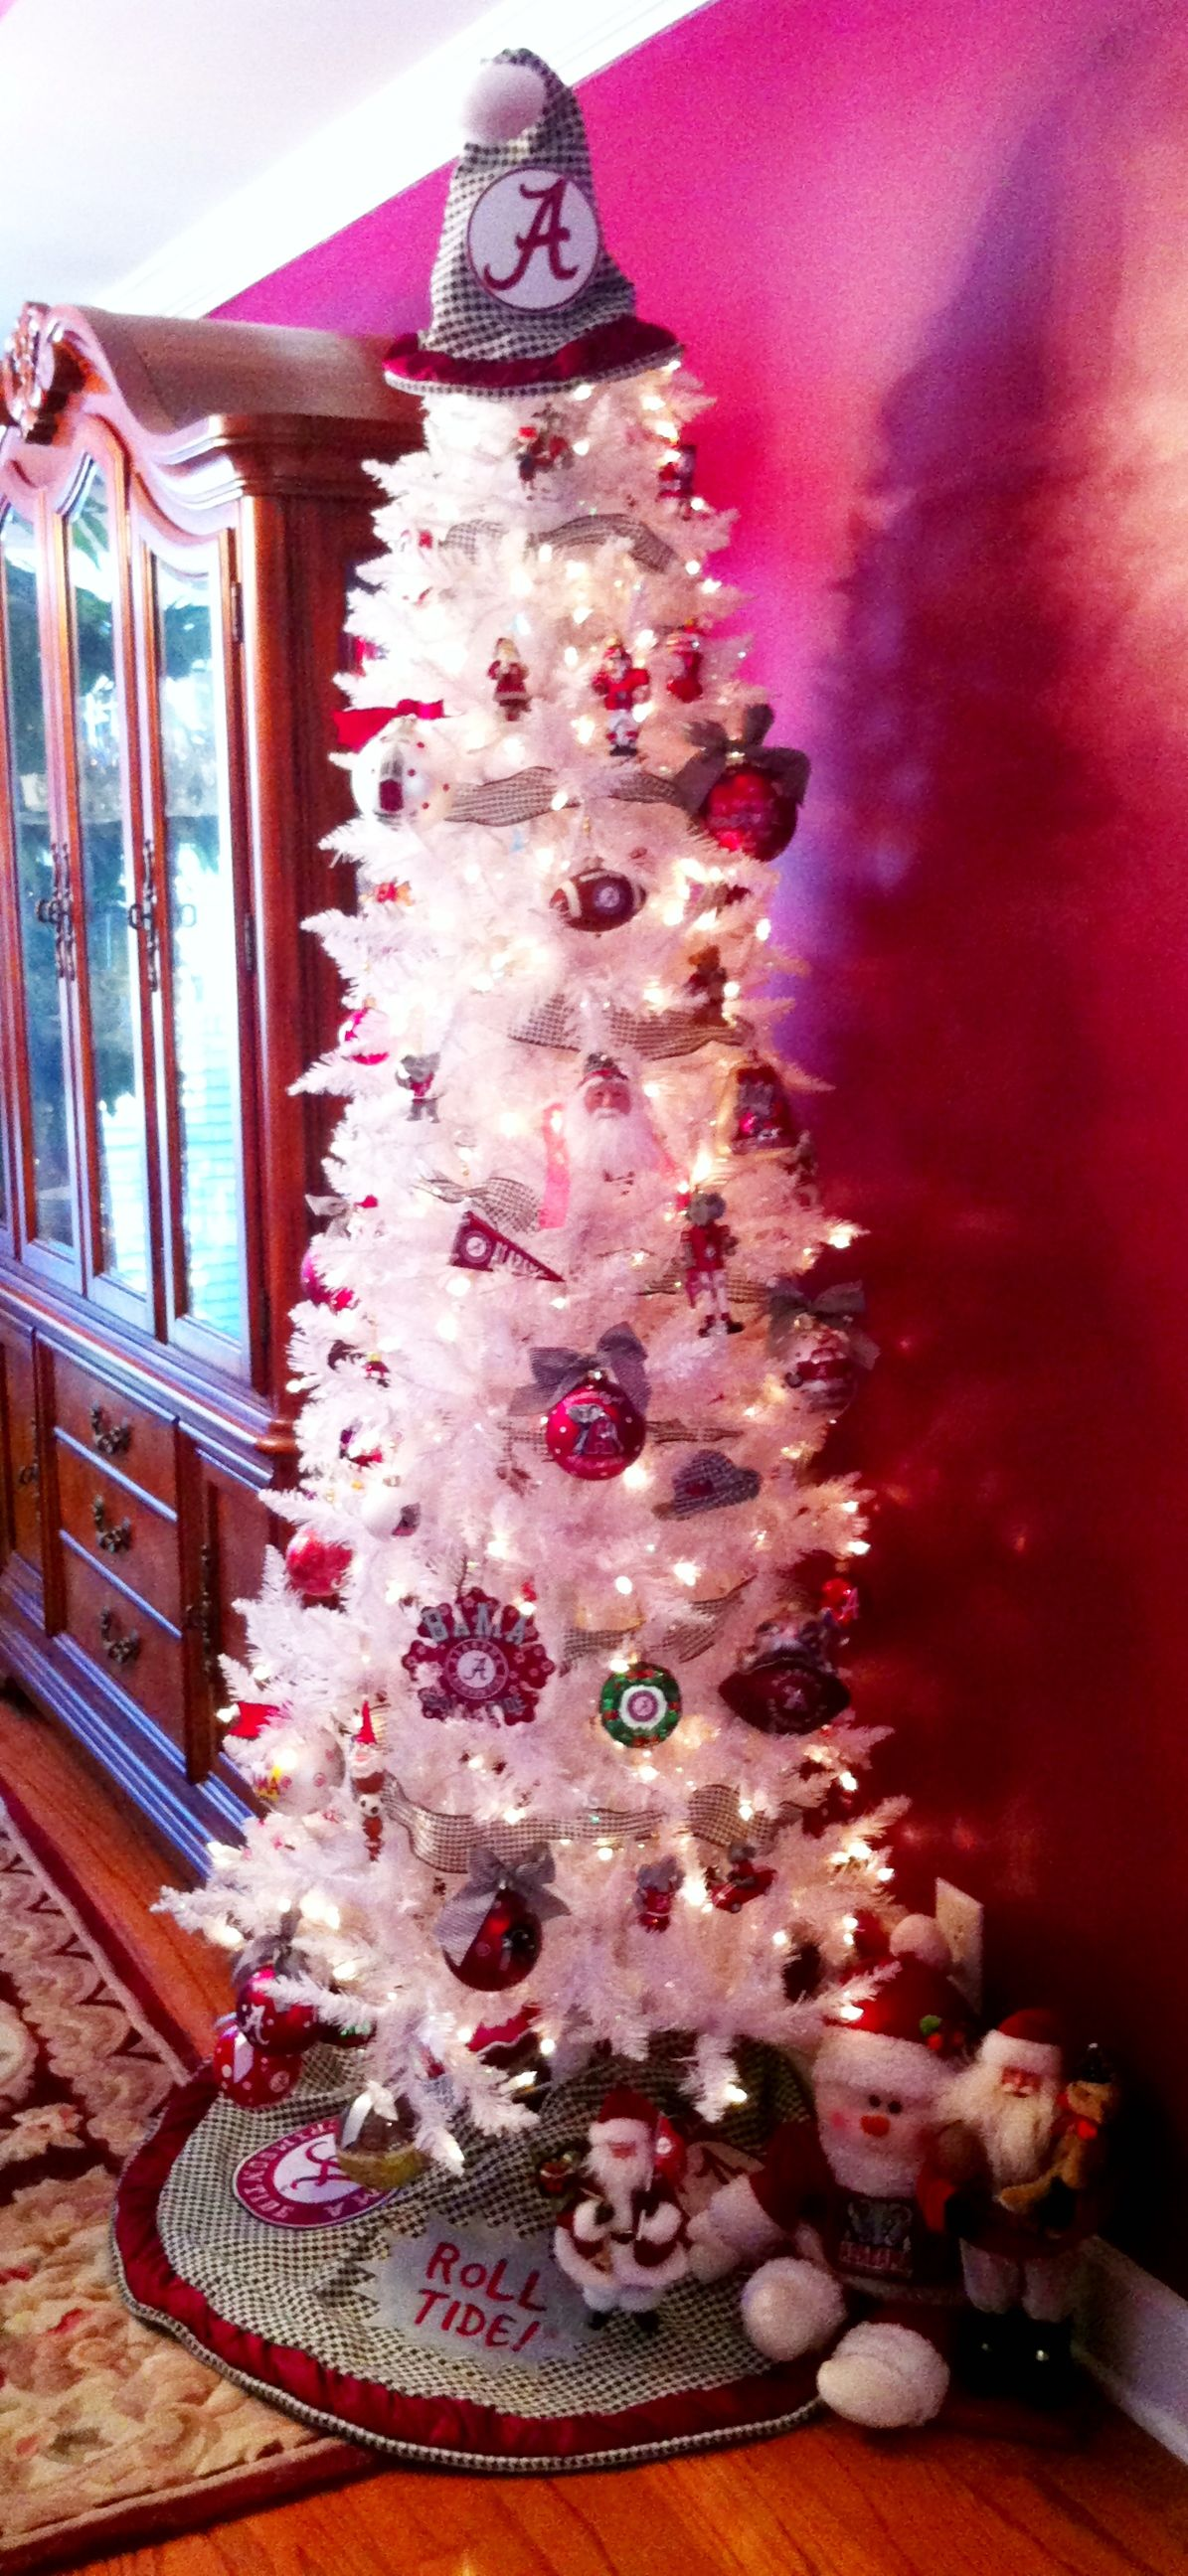 Alabama Christmas.University Of Alabama Themed Christmas Tree Roll Tide Y